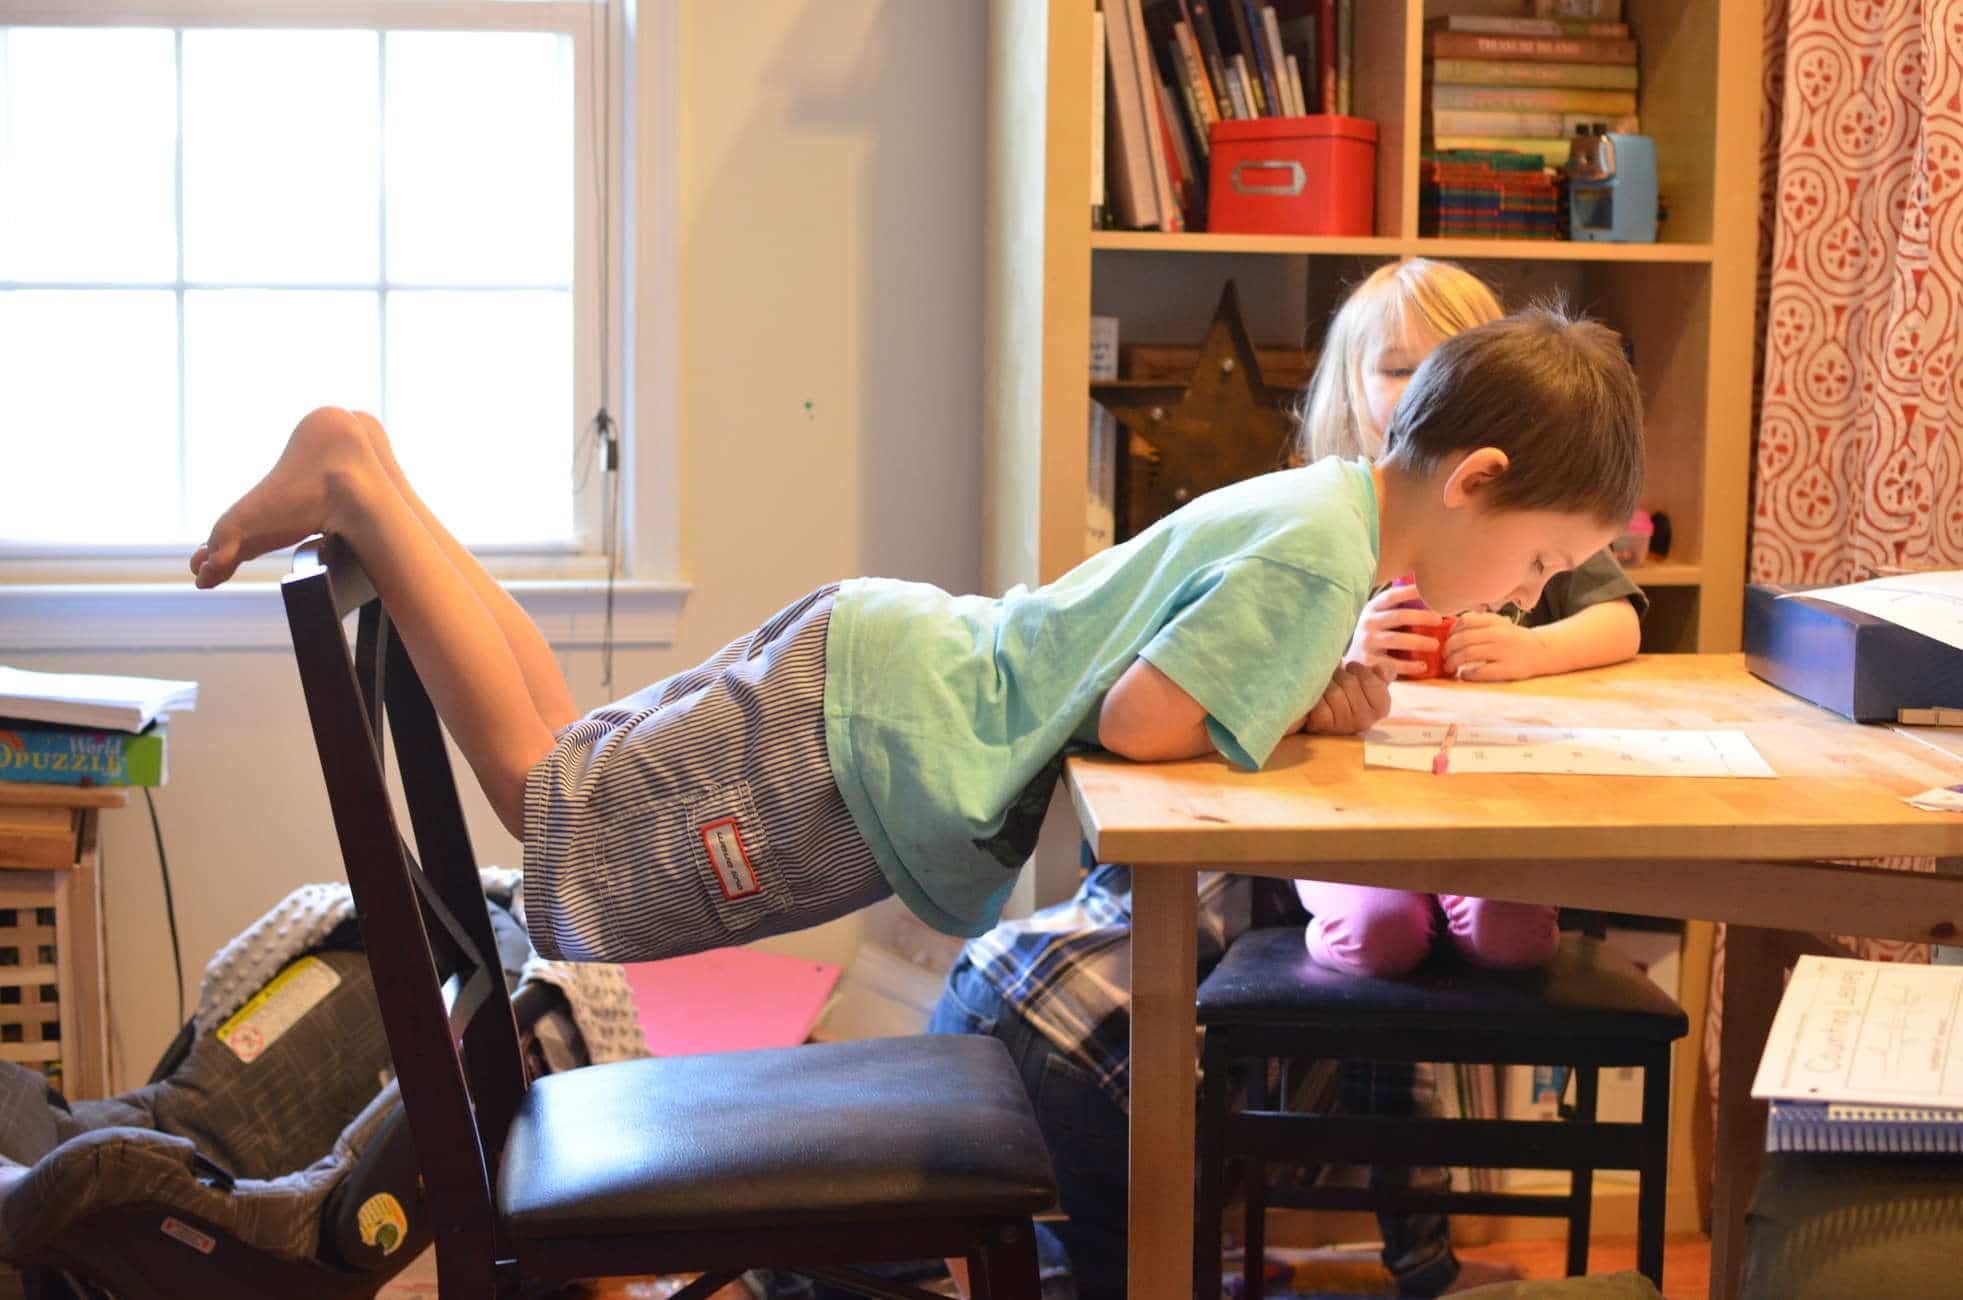 Our January Re-Cap: Real Life Homeschooling